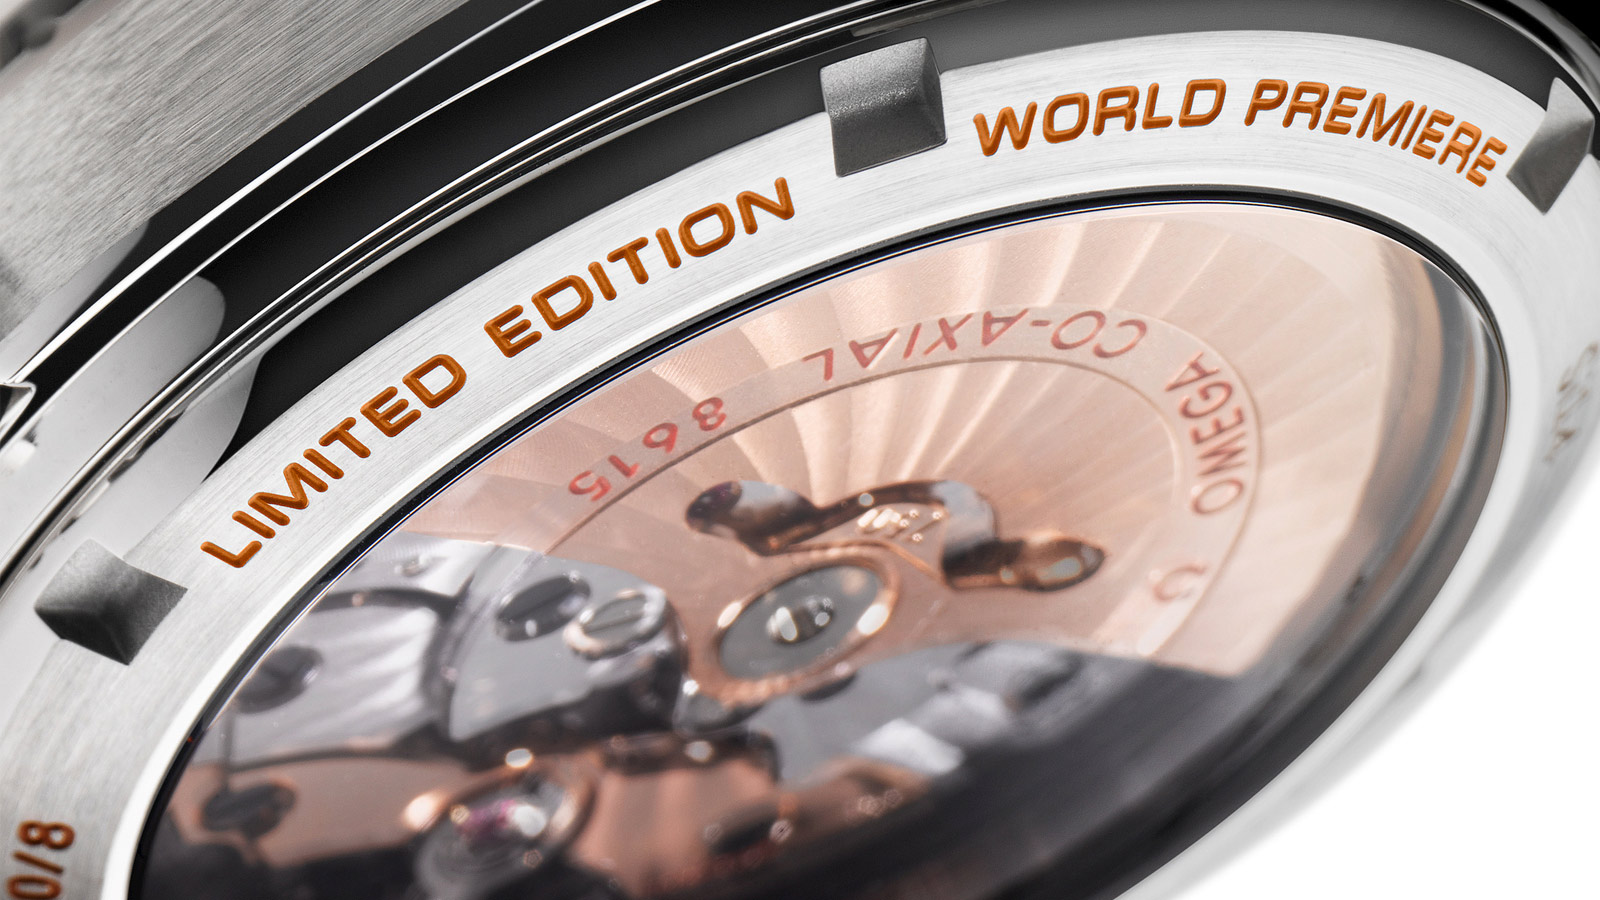 Seamaster Planet Ocean 600M Planet Ocean 600M Omega Co‑axial GMT 43.5mm - 232.93.44.22.99.001 - View 2